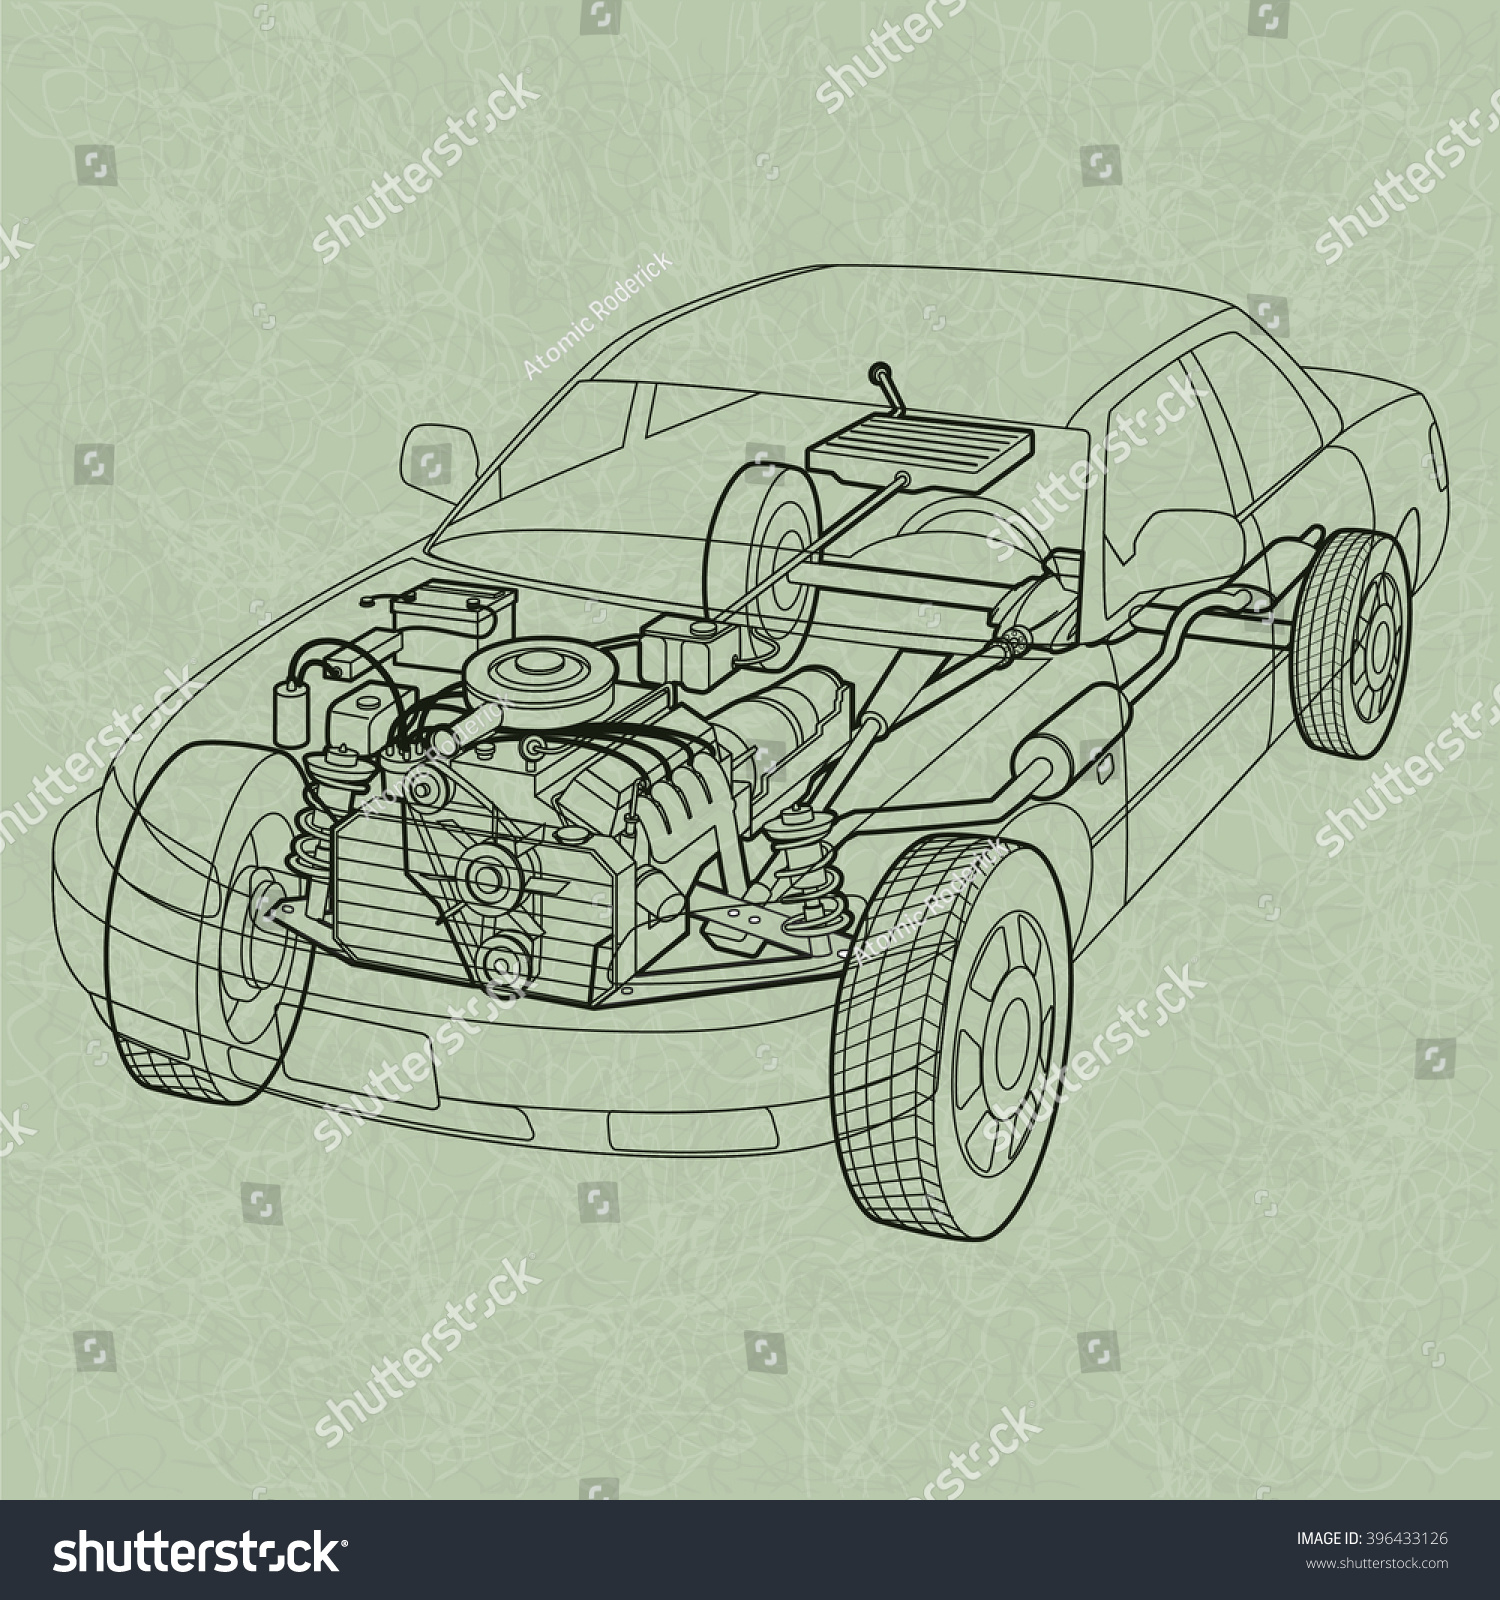 Car Cross Section Diagram Not Lossing Wiring Engine Generic Ghosting Stock Vector Royalty Rh Shutterstock Com View Geology